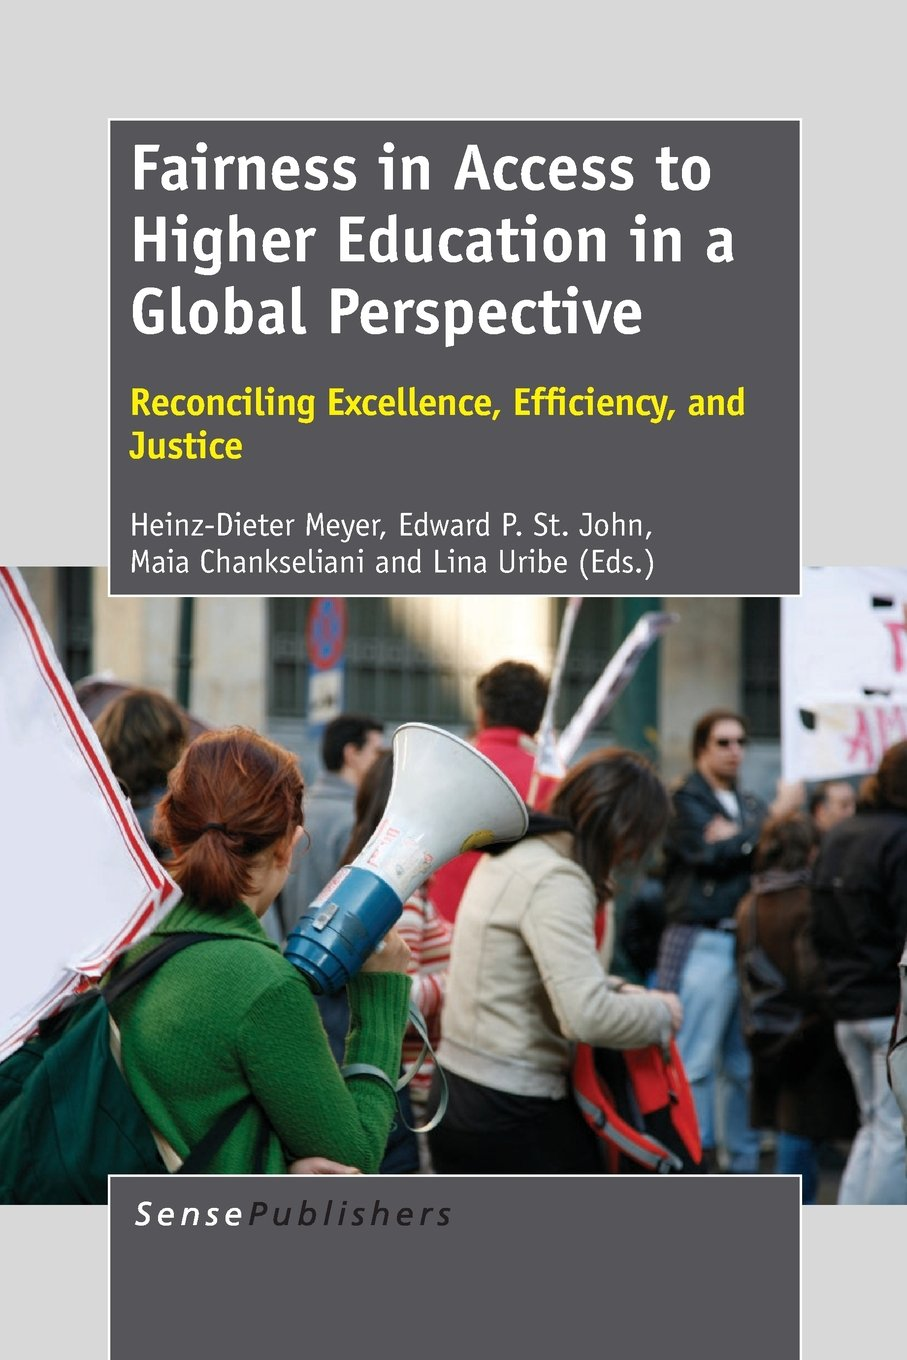 Fairness in Access to Higher Education in a Global Perspective: Reconciling Excellence, Efficiency, and Justice pdf